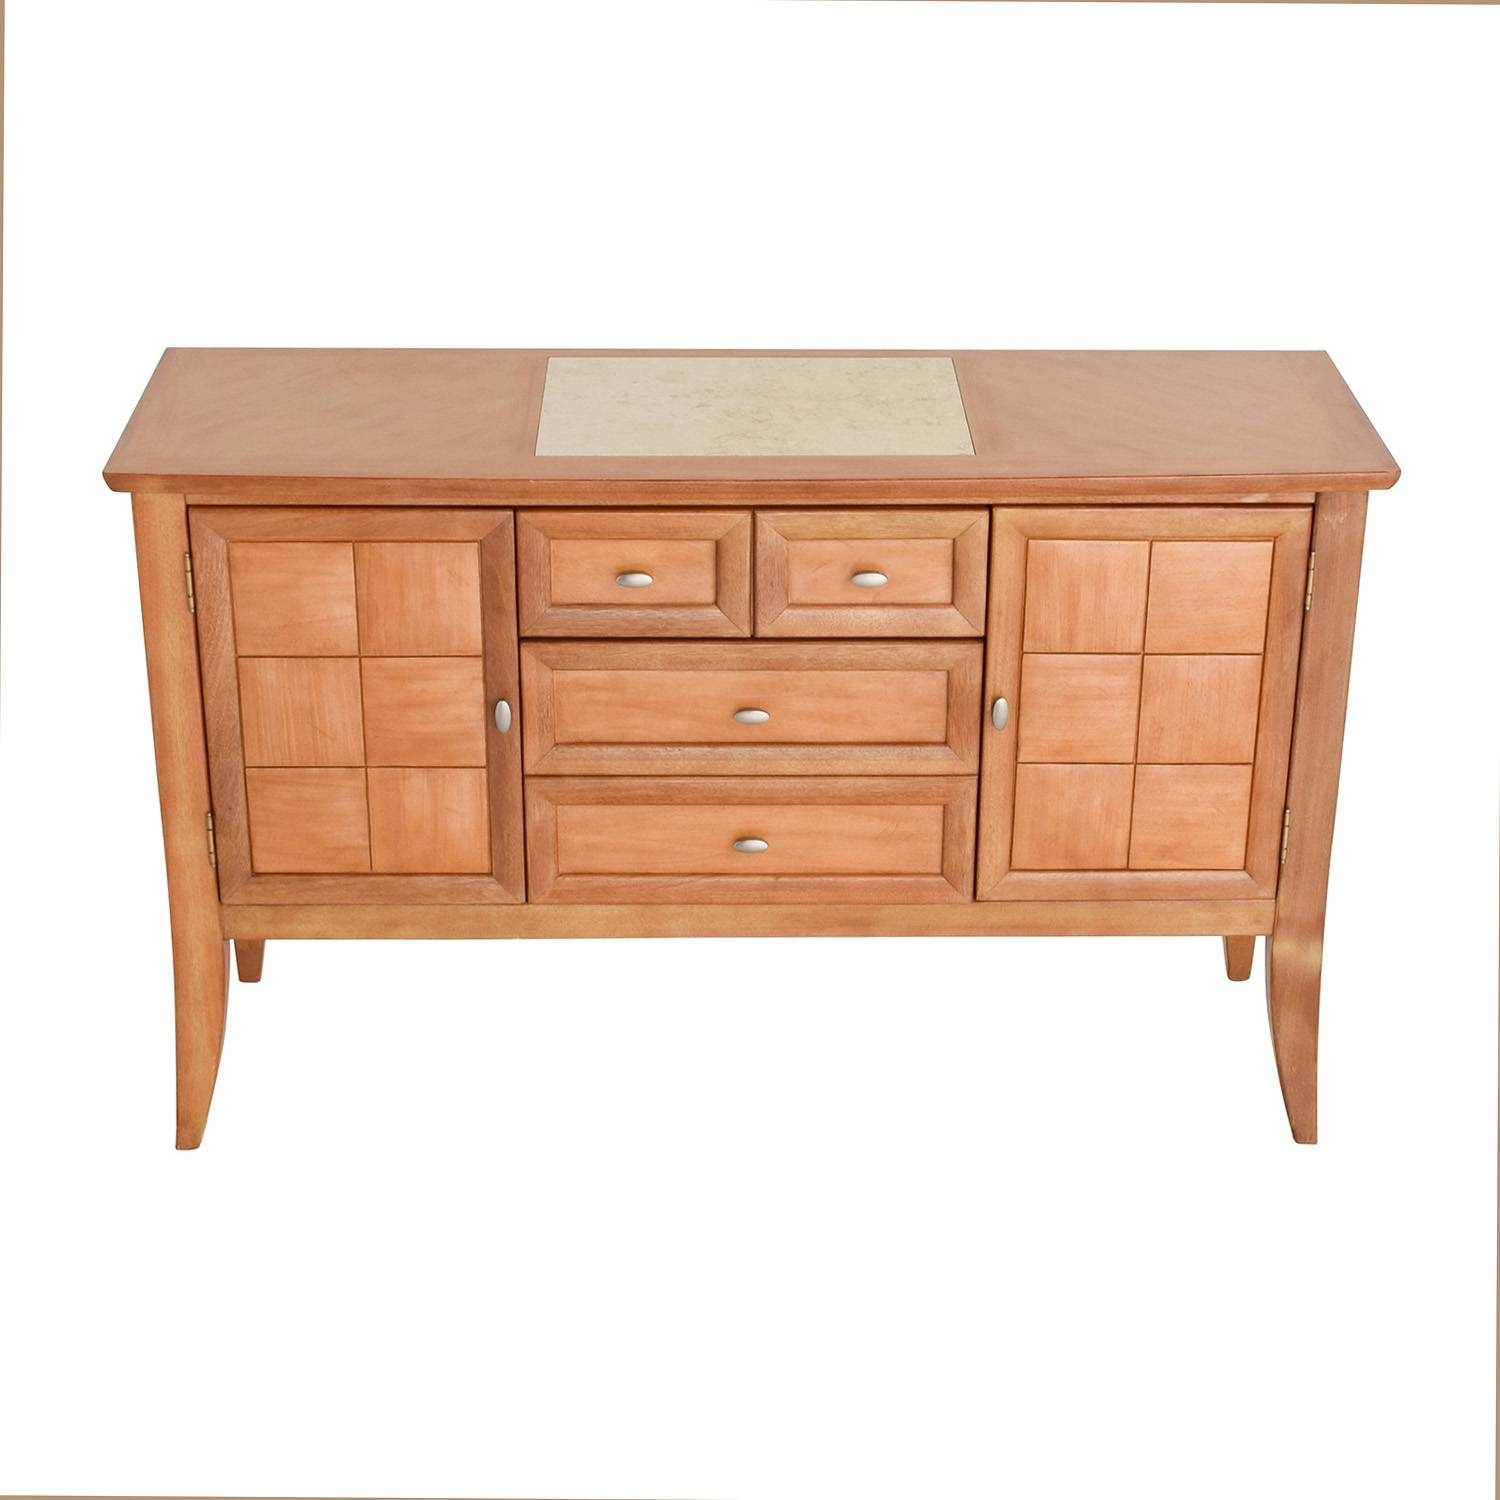 90% Off - Thomasville Thomasville Buffet Table / Storage with Thomasville Sideboards (Image 7 of 15)